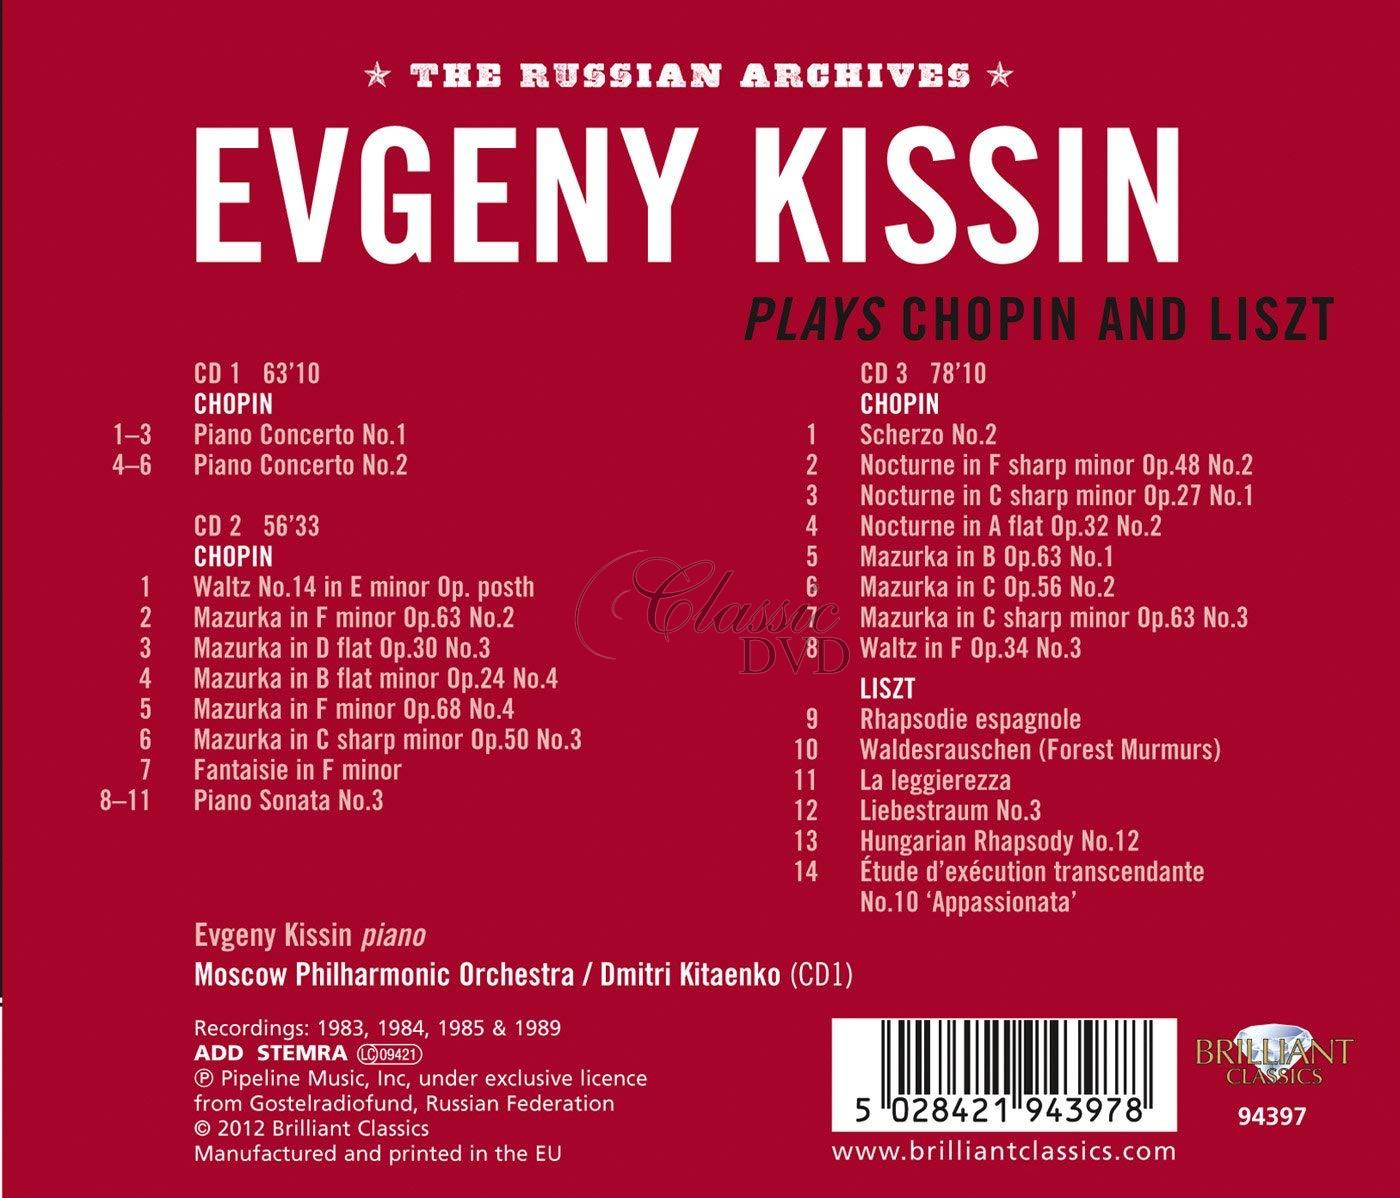 EVGENY KISSIN PLAYS CHOPIN AND LISZT (3CD)